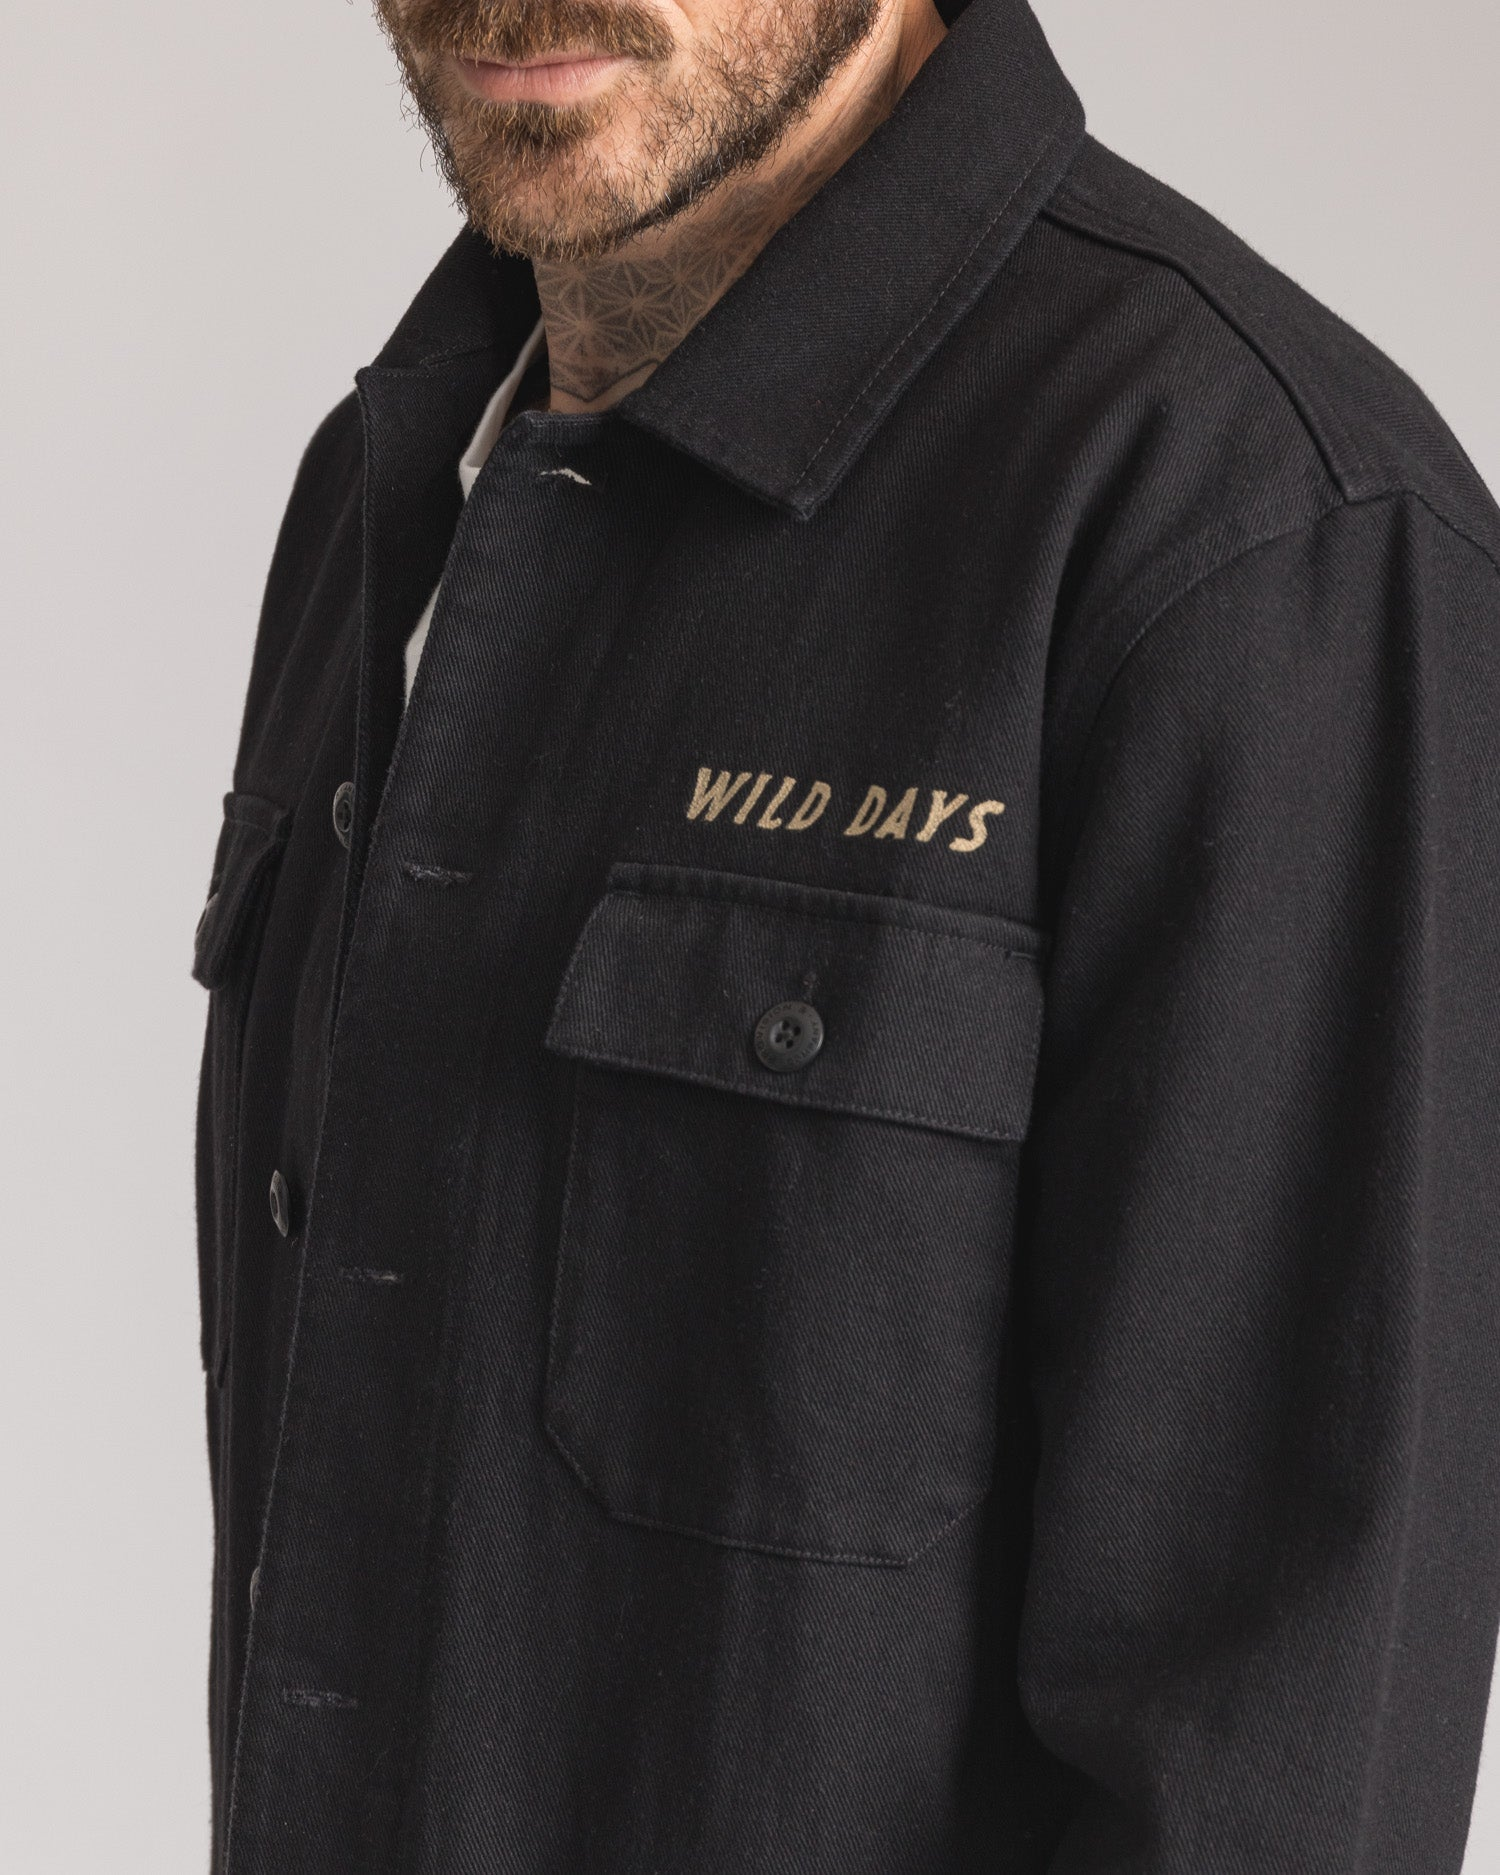 Mens Black Embroidered Casual Overshirt